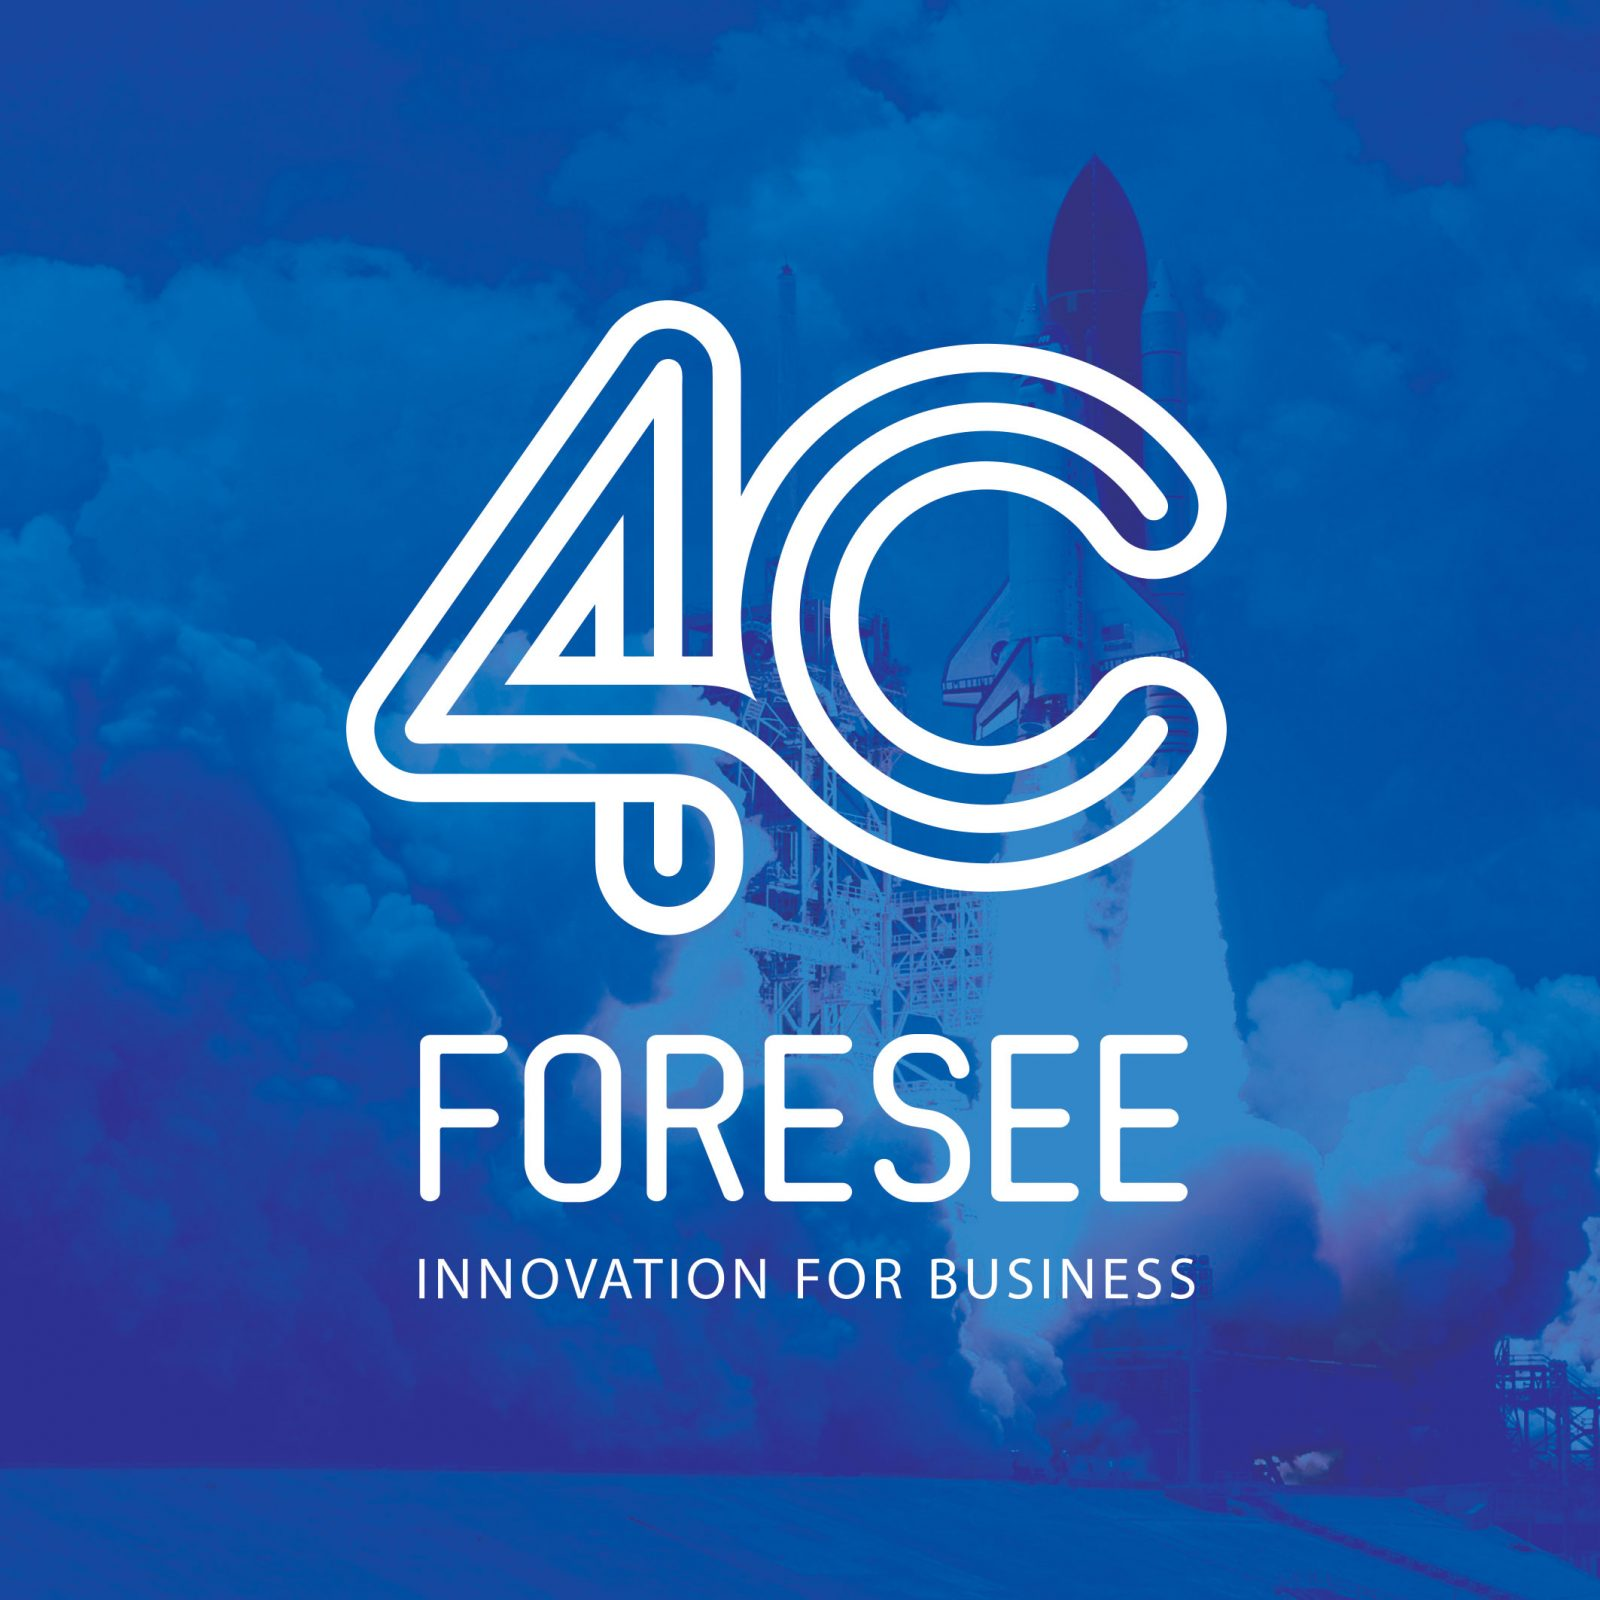 Branding 4C FORESEE